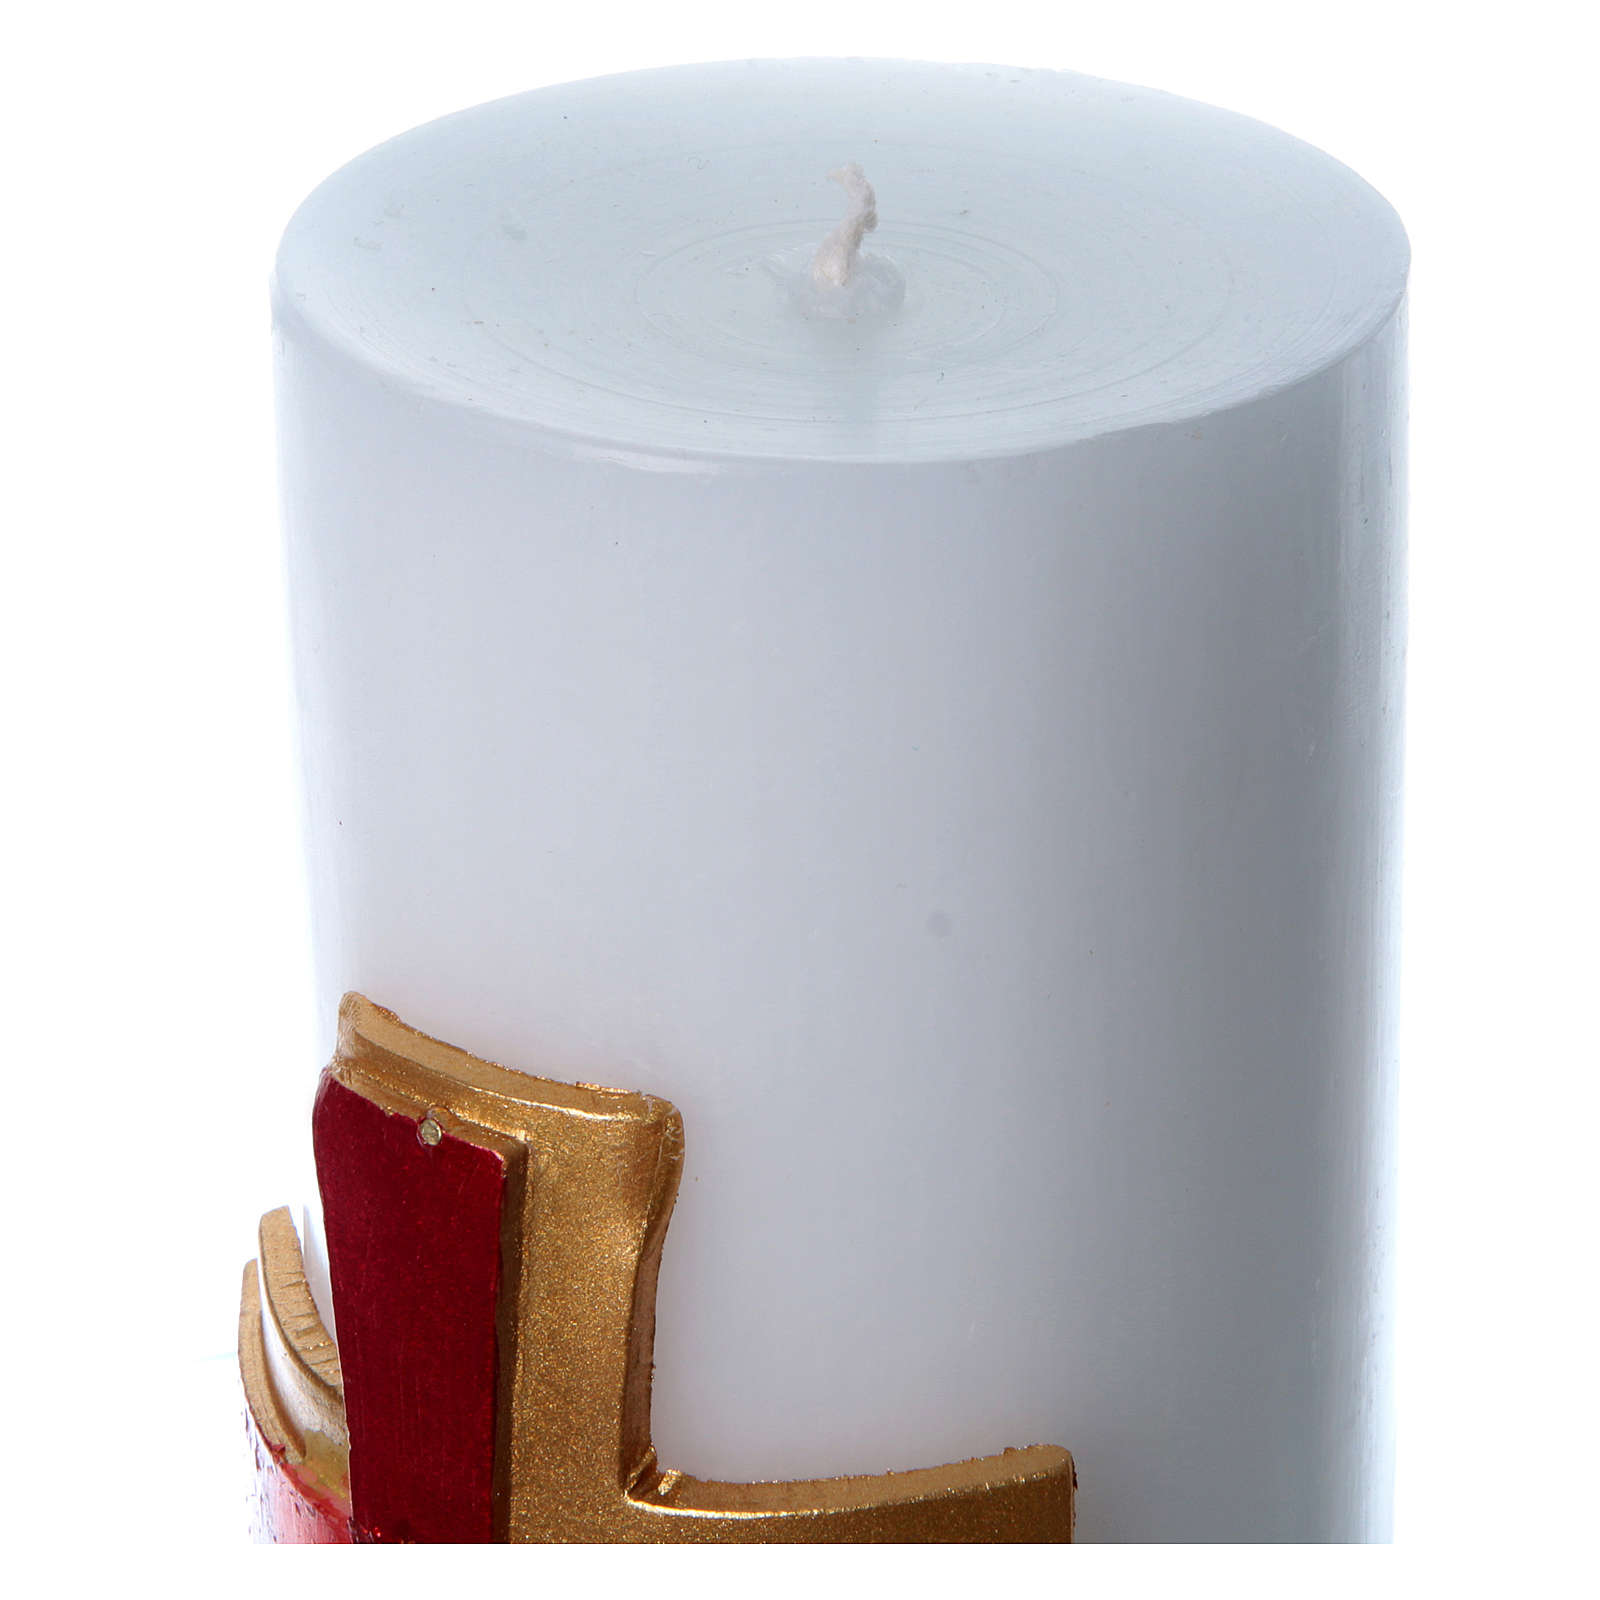 Altar candle with bas relief decoration in white wax with red cross, 8 cm diameter 3